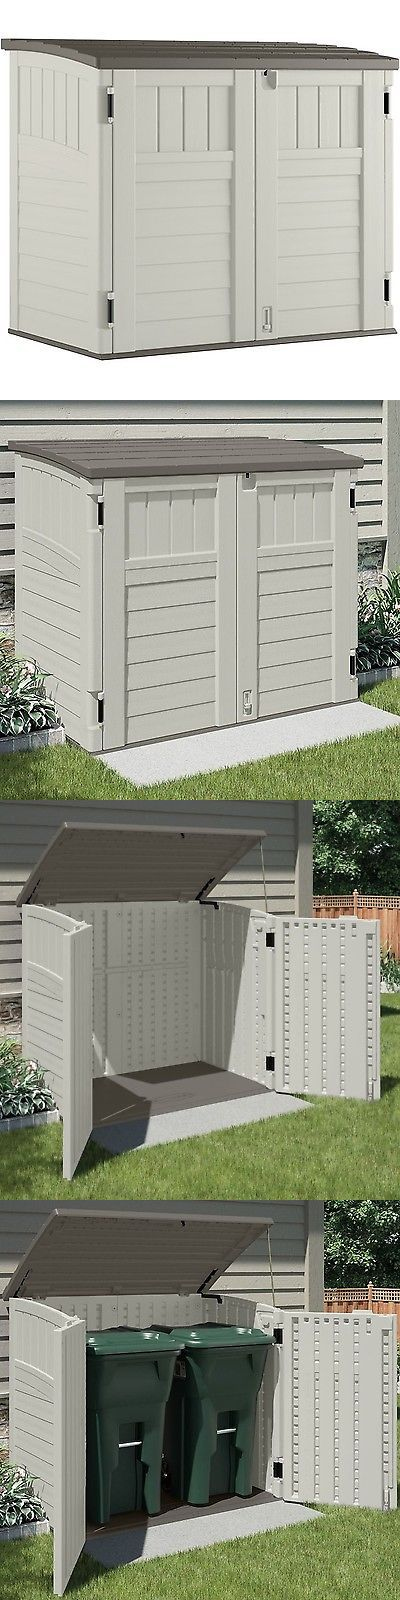 Garden and Storage Sheds 139956: Suncast Horizontal Utility Shed -> BUY IT NOW ONLY: $386.07 on eBay!